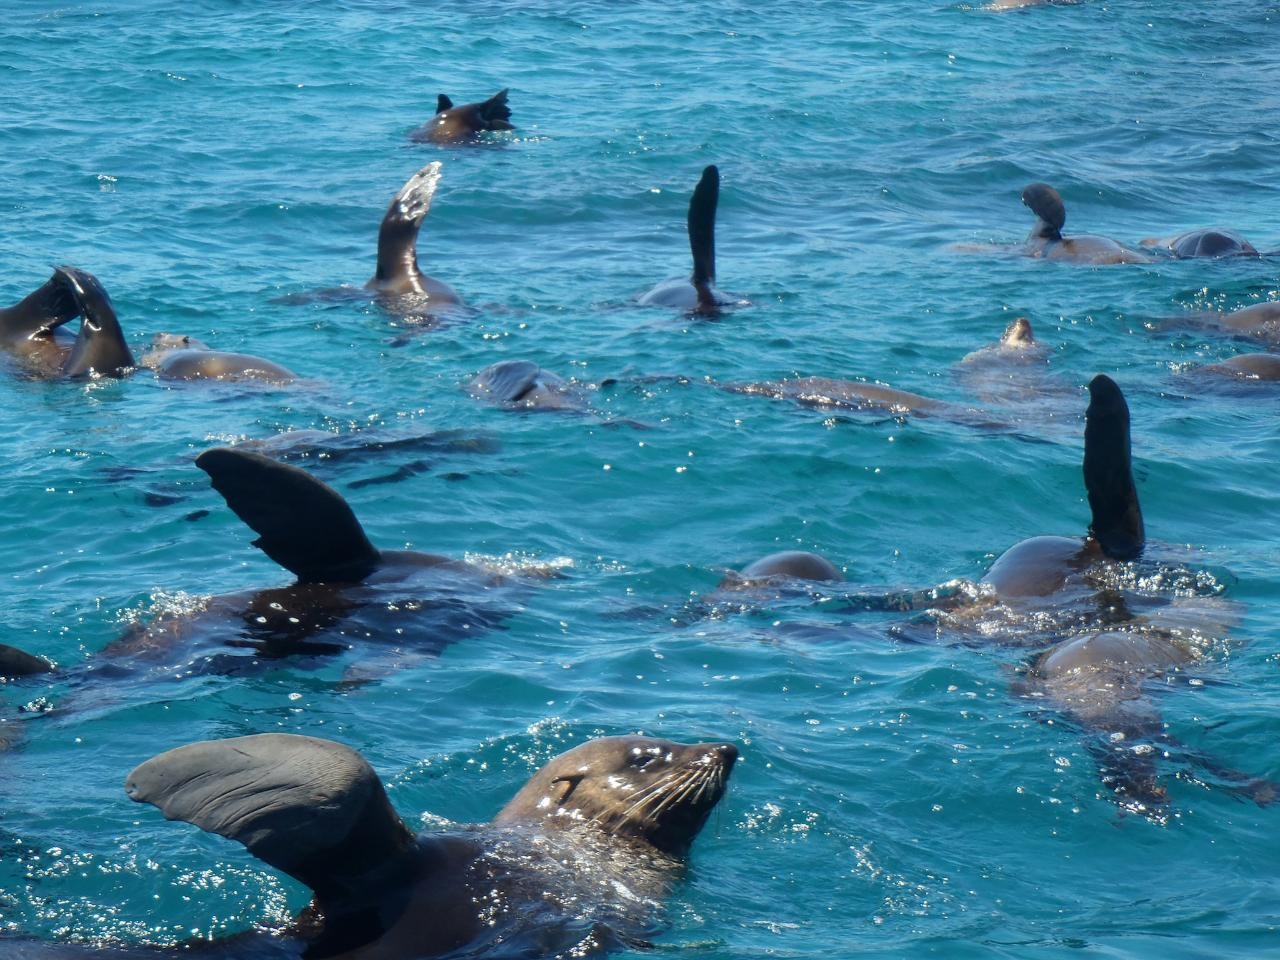 Snorkel with the Seals at Montague Island